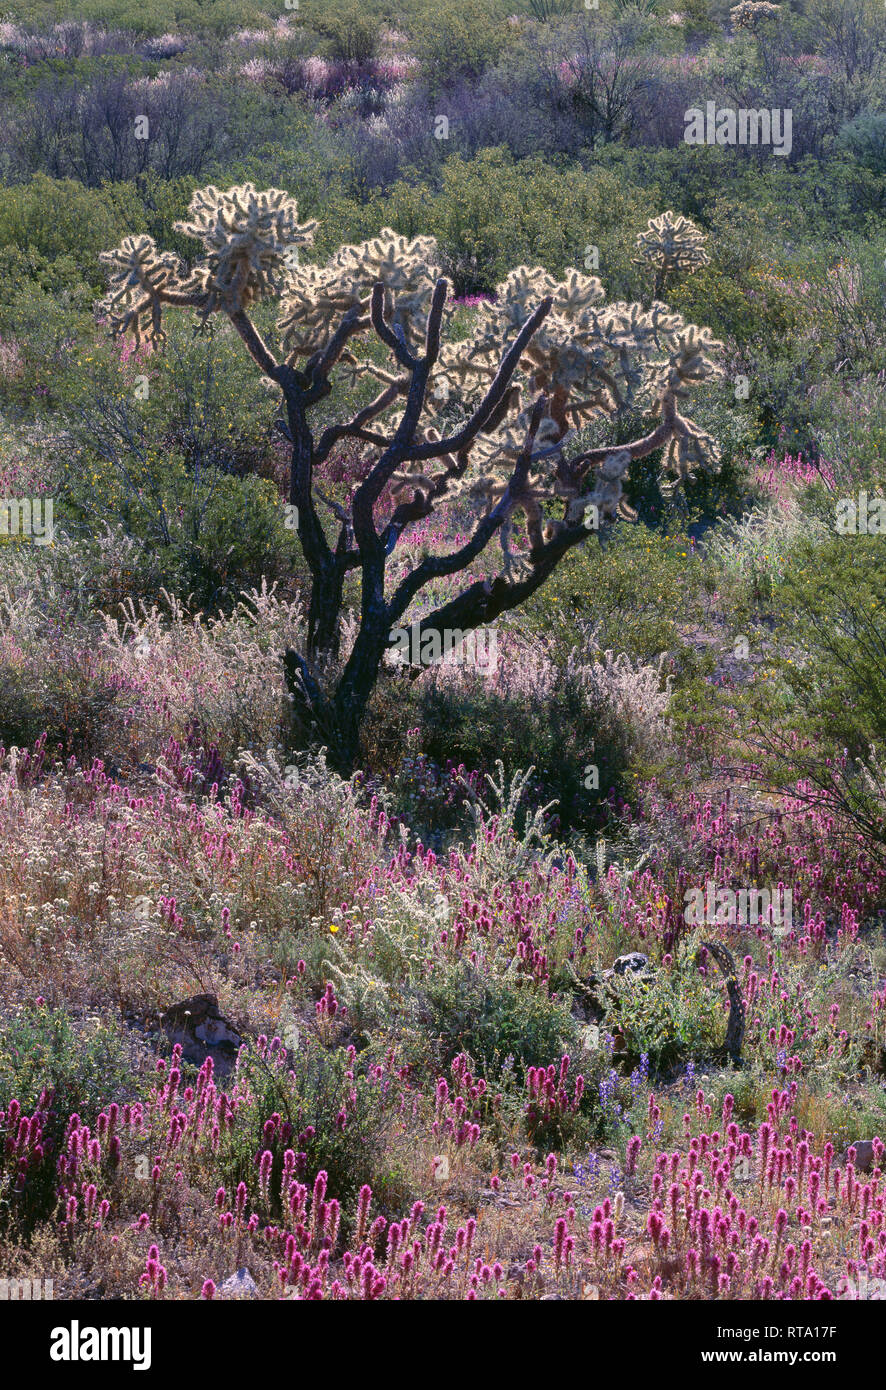 USA, Arizona, Organ Pipe Cactus National Monument, Chain-fruit cholla and owl clover glow in morning sun; Puerto Blanco Mountains. - Stock Image